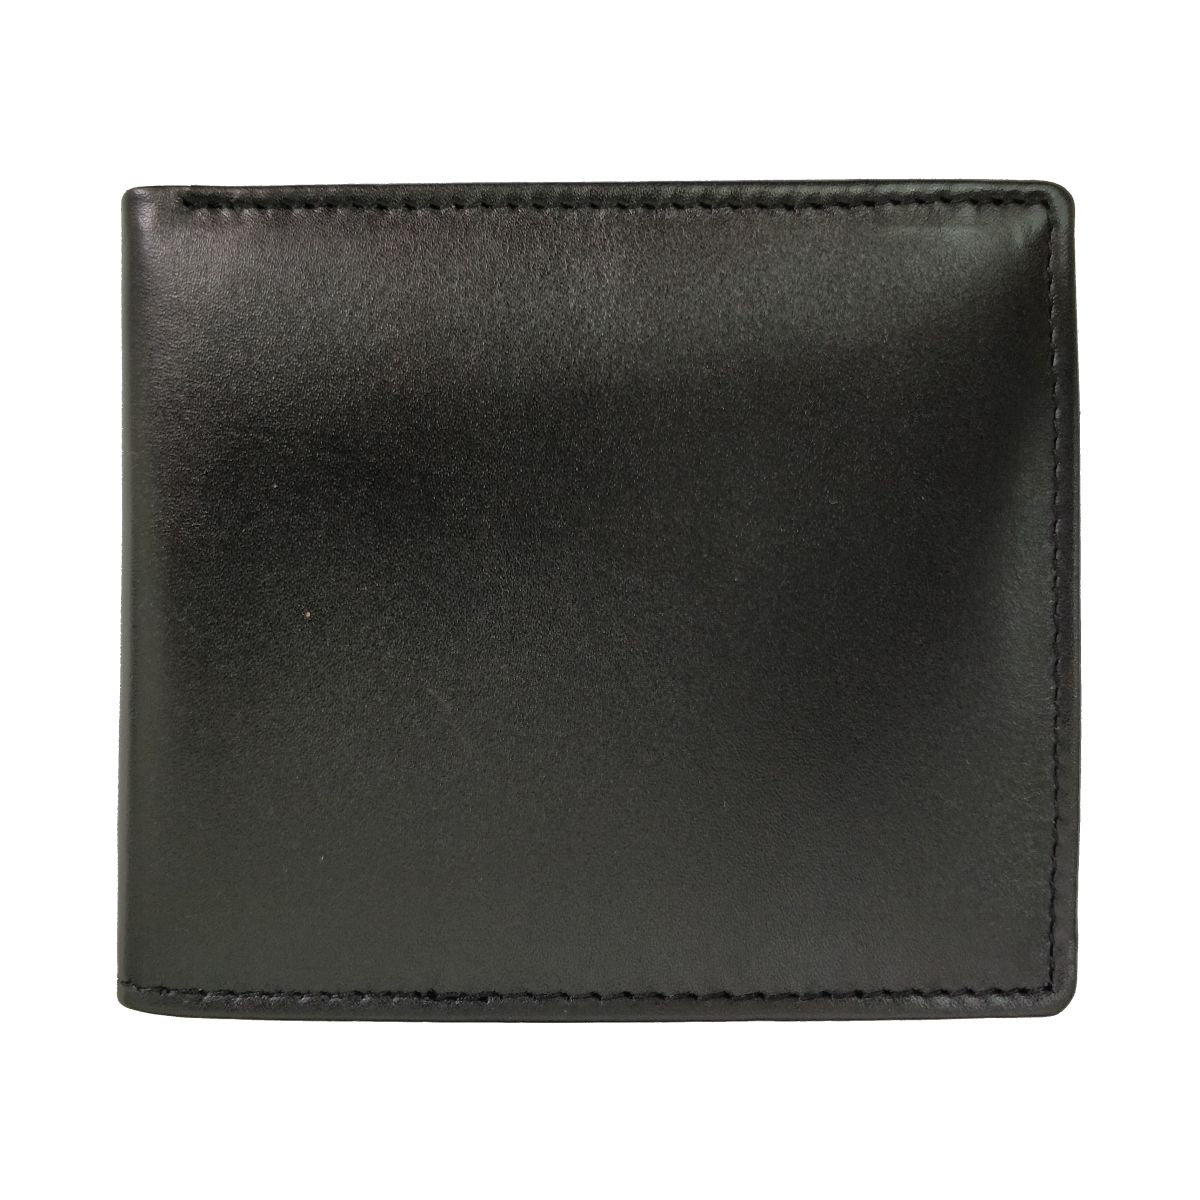 solo Leather Wallet 2 Strips and Coin Pouch - Black